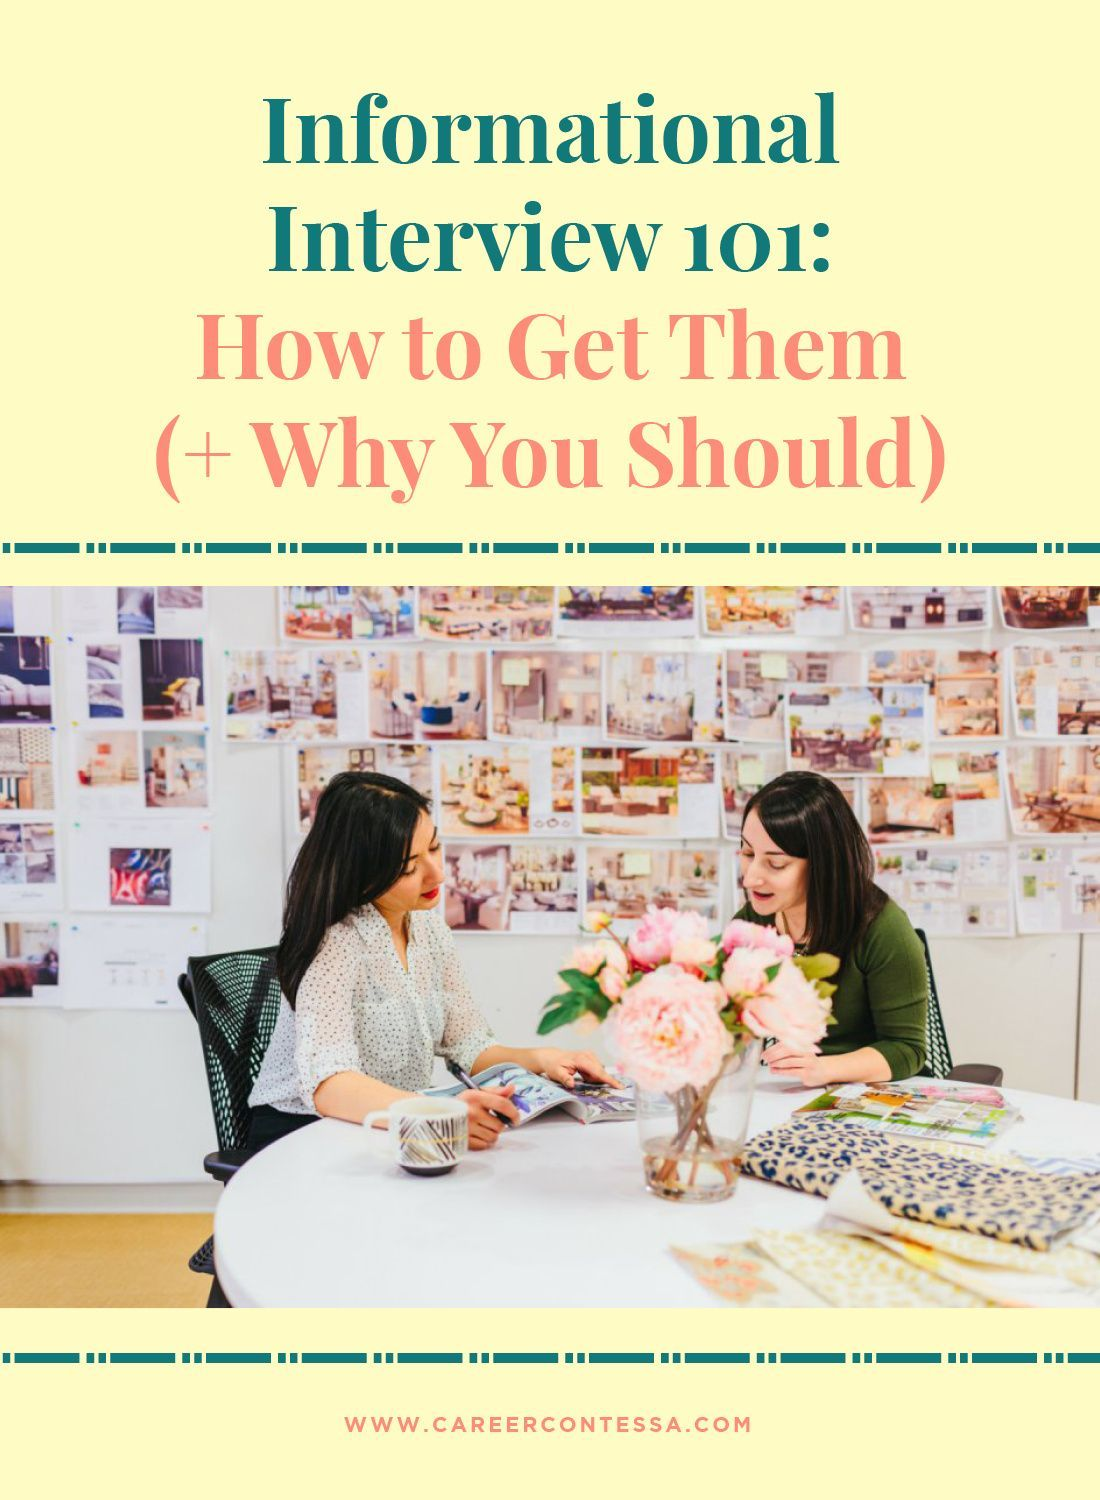 Informational Interviews What They Are and How to Use